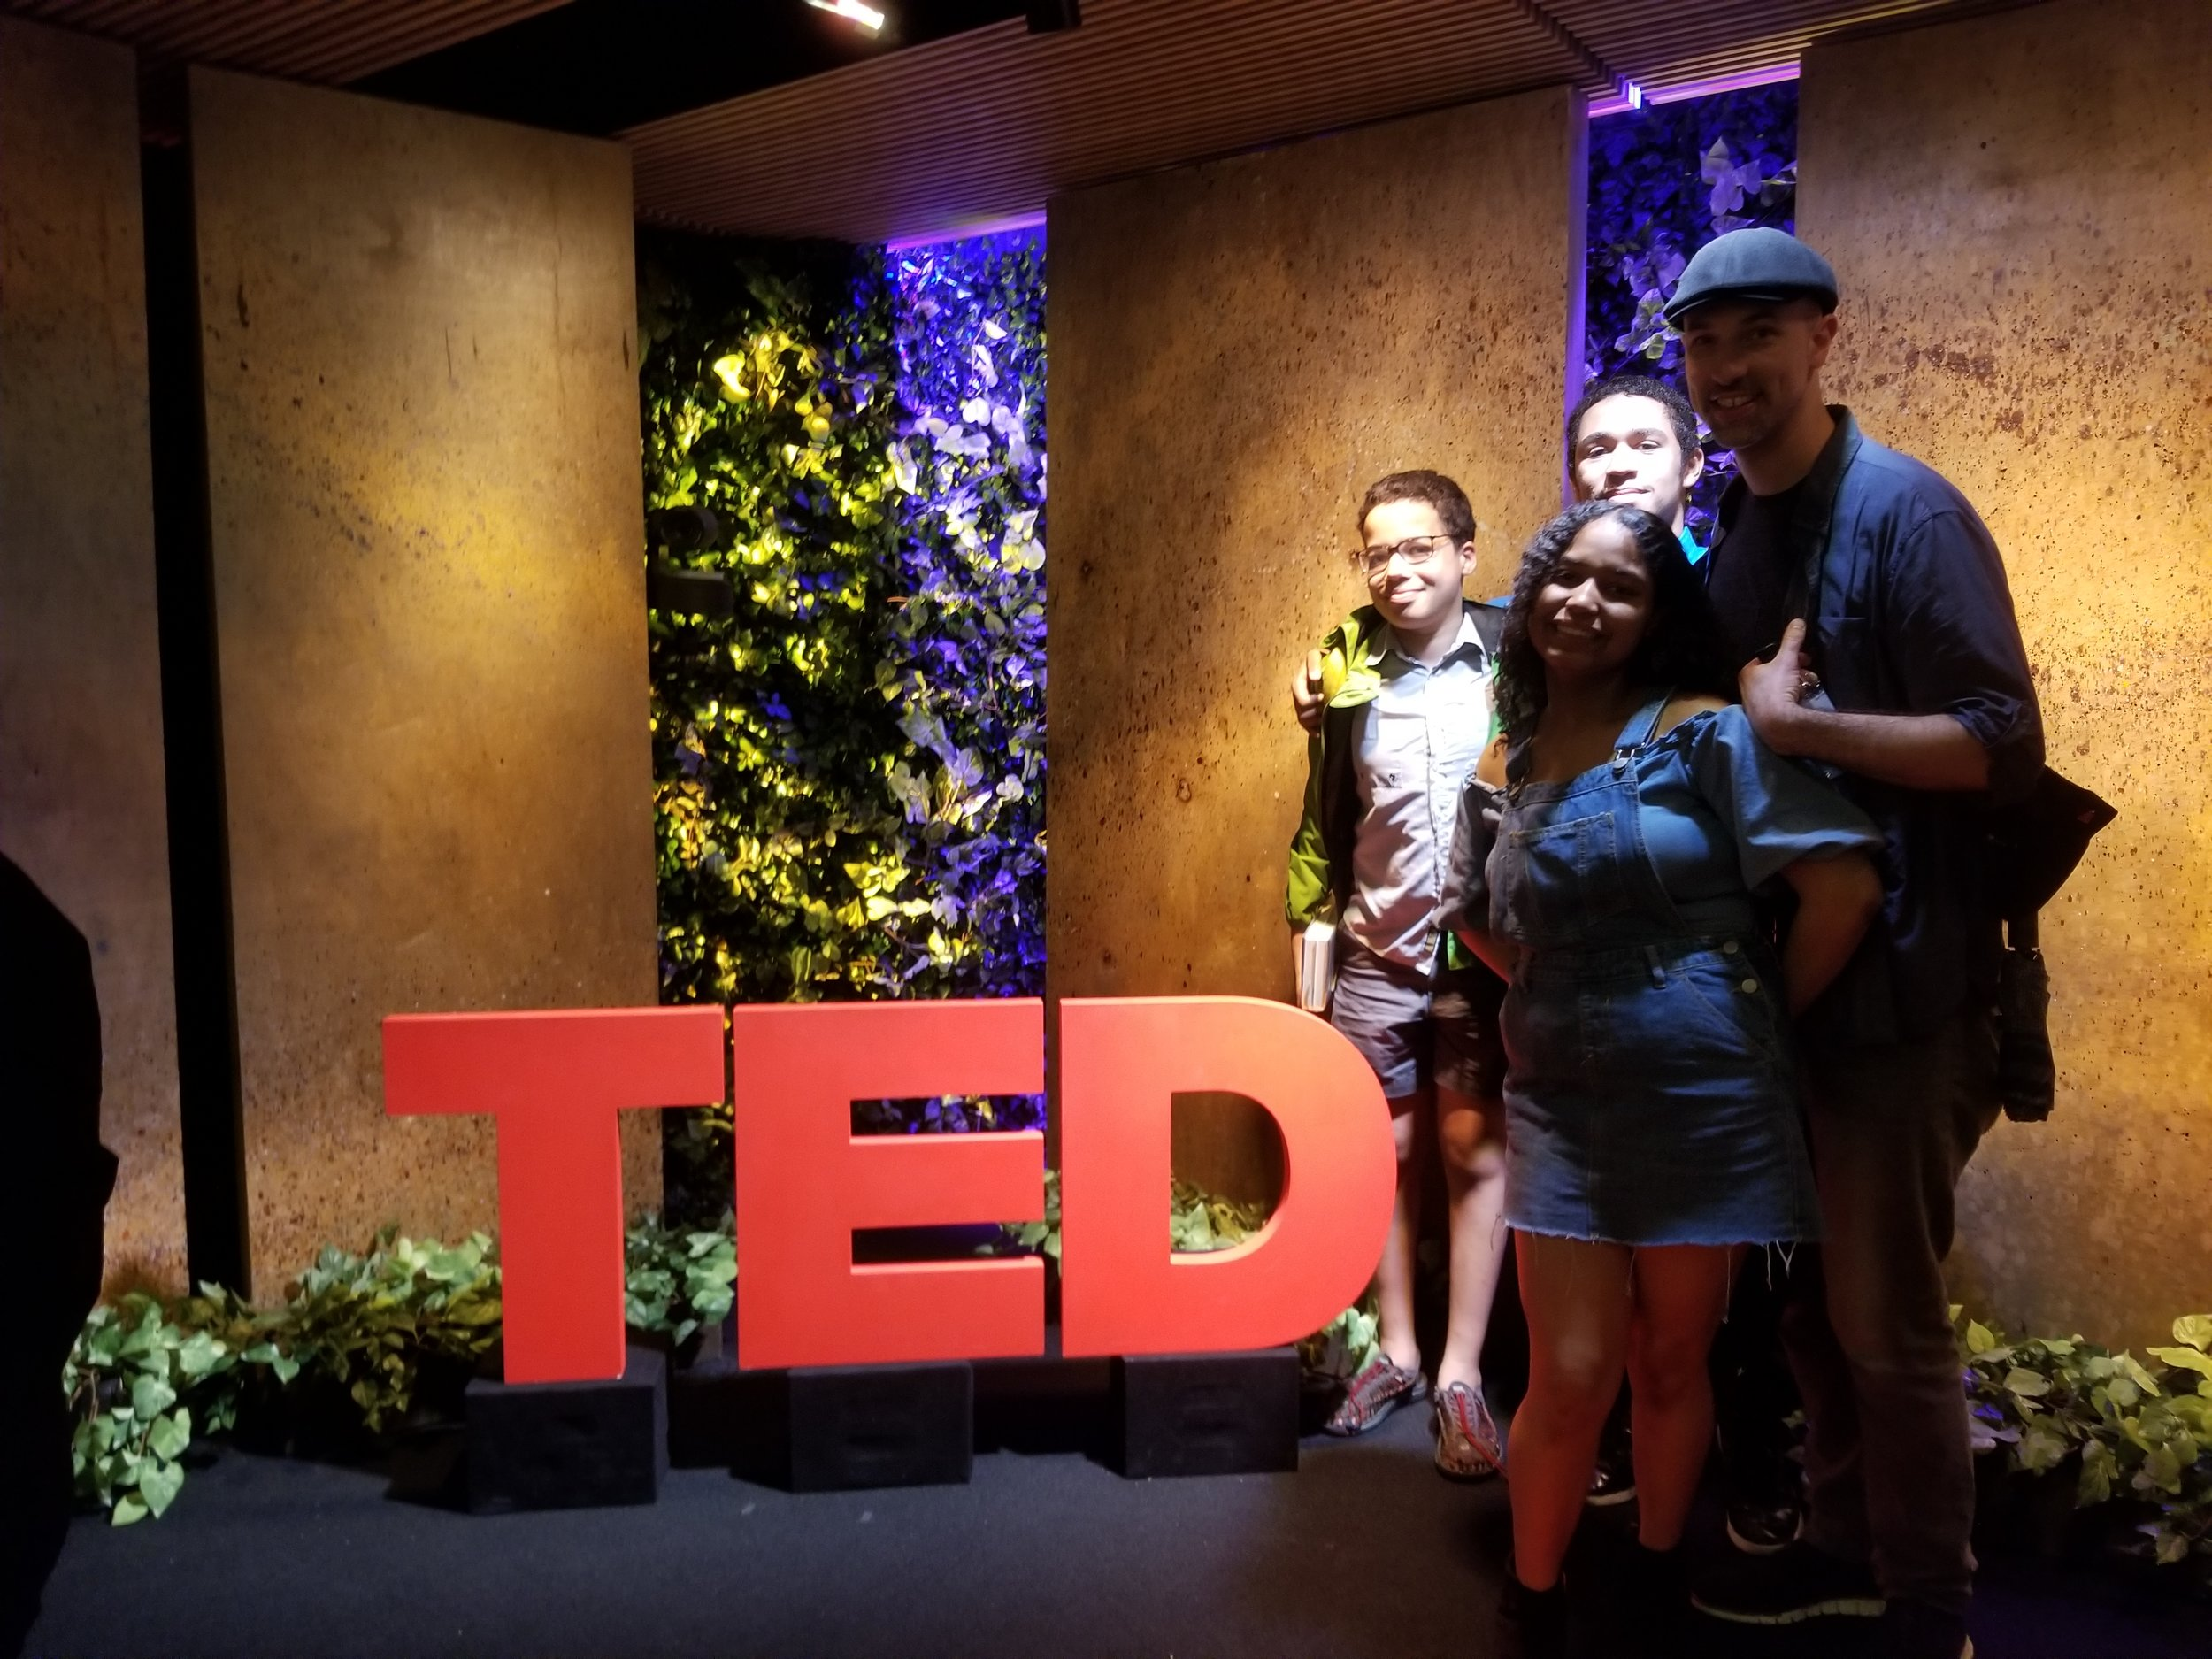 Ben with students at Ted